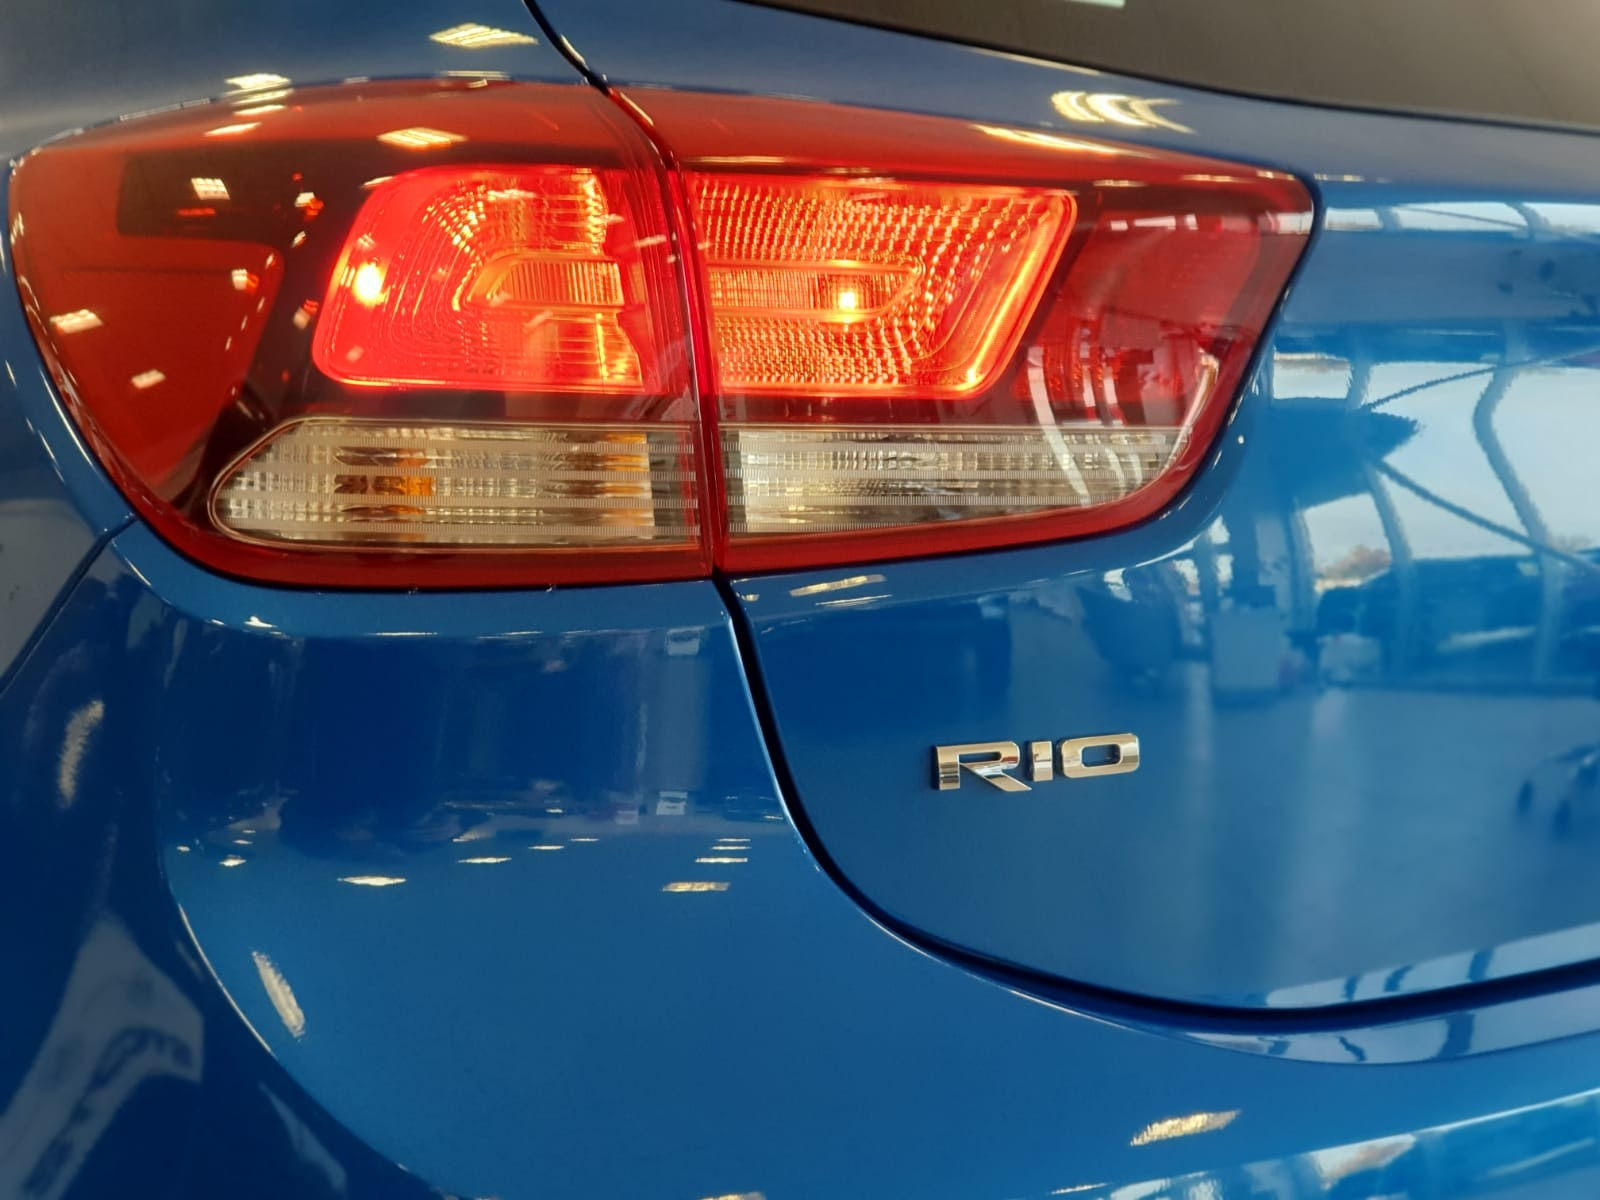 New Kia Rio Colour - Azure Blue